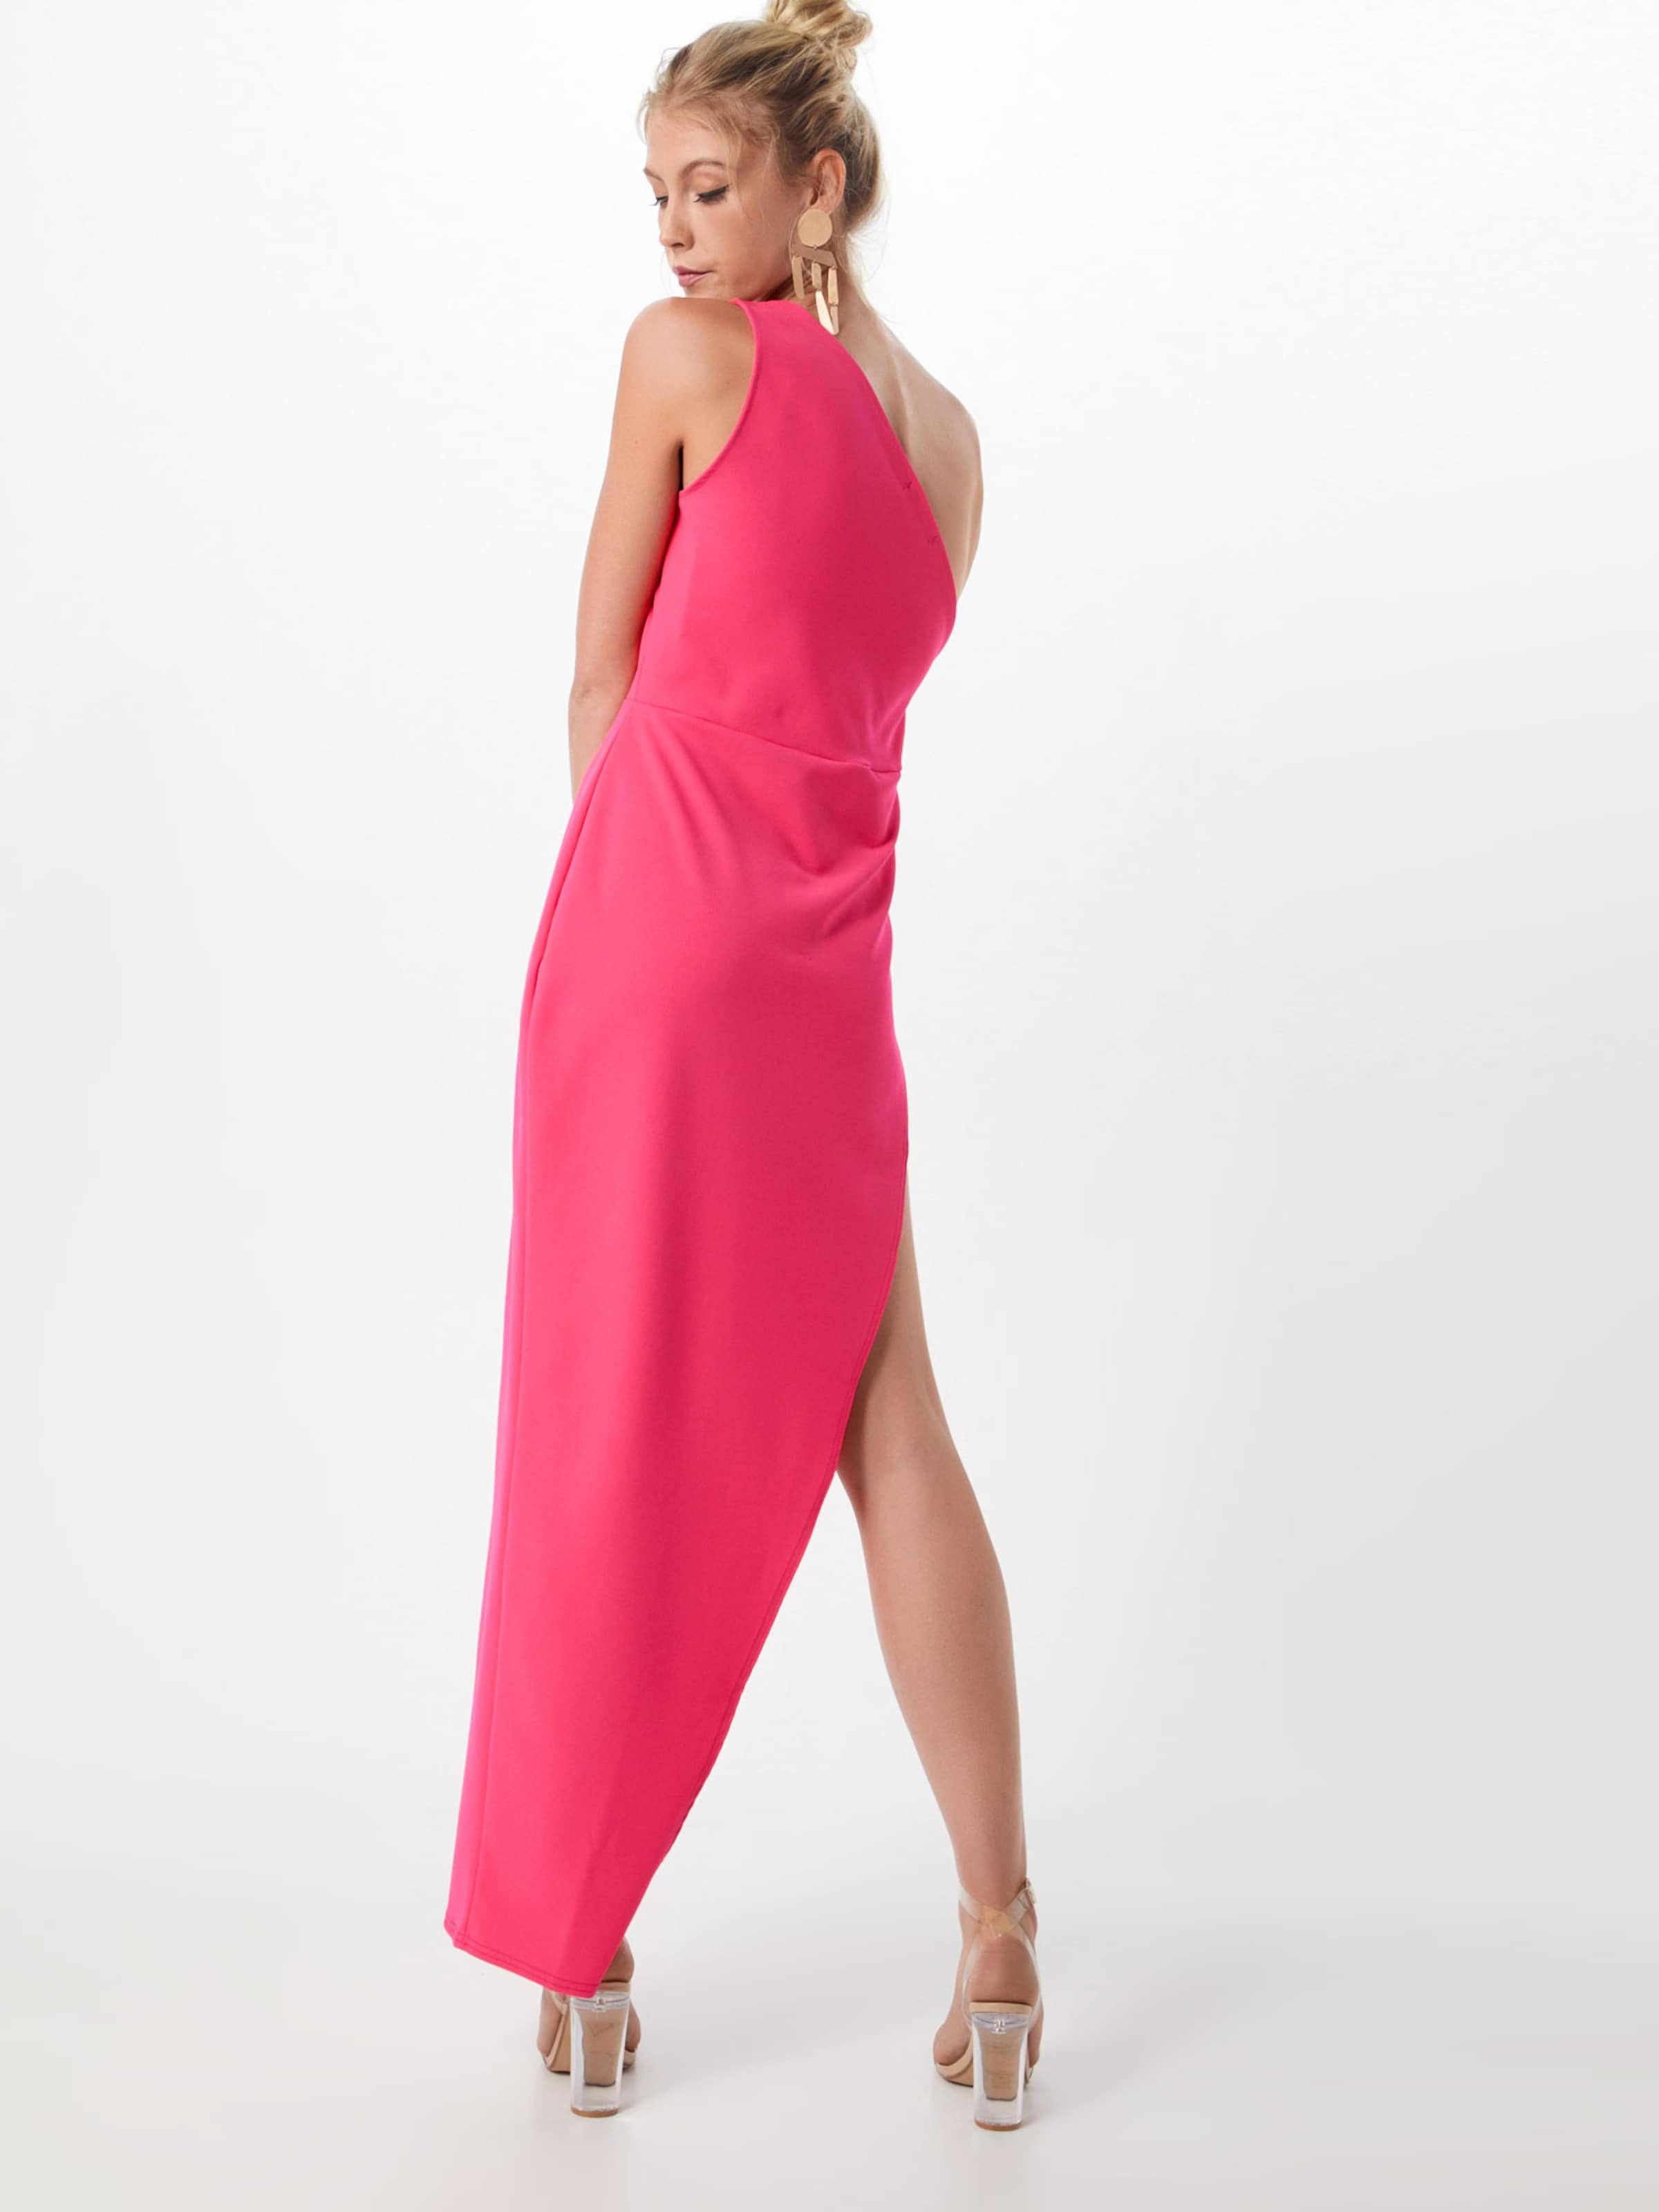 Robe En Missguided Cocktail Rose De 0wnOXP8k